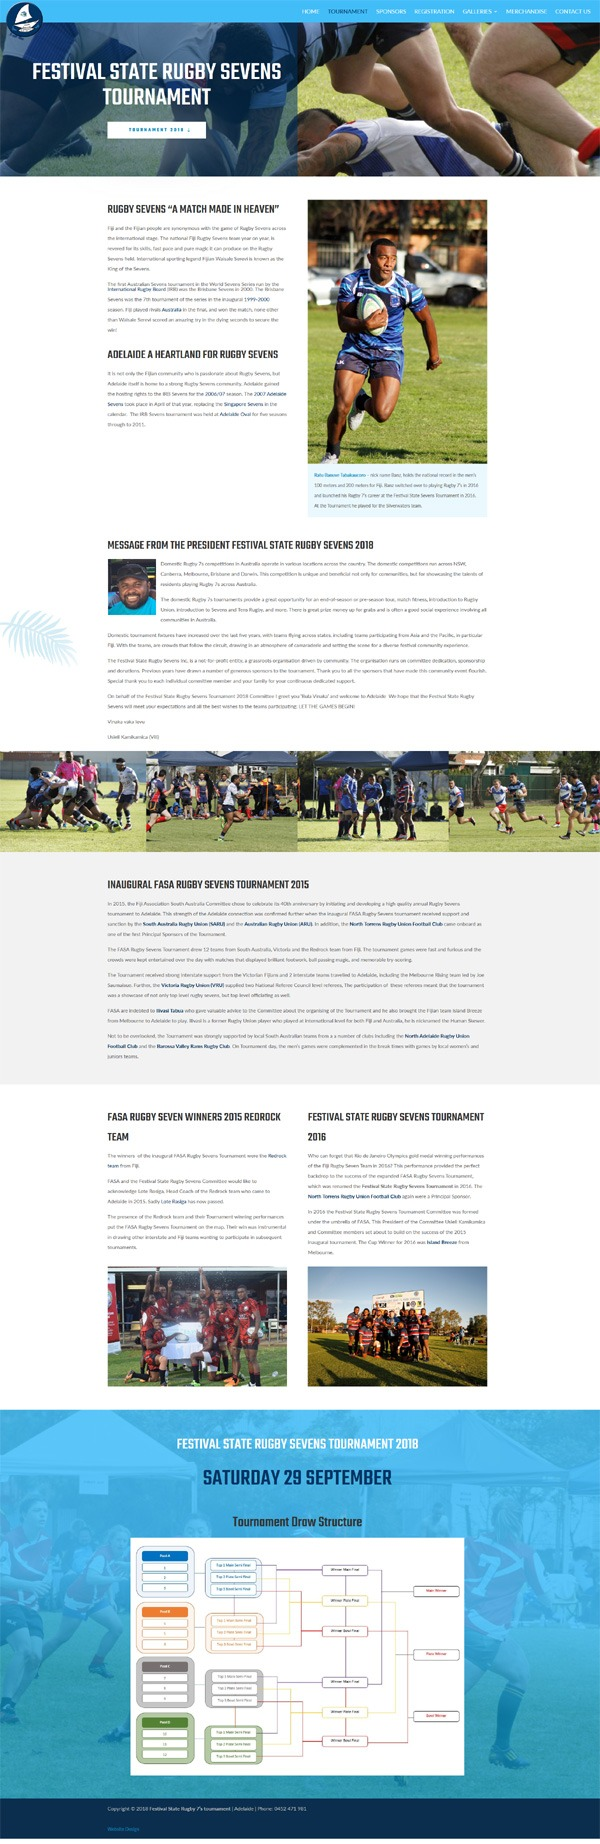 website for fsrugby7s